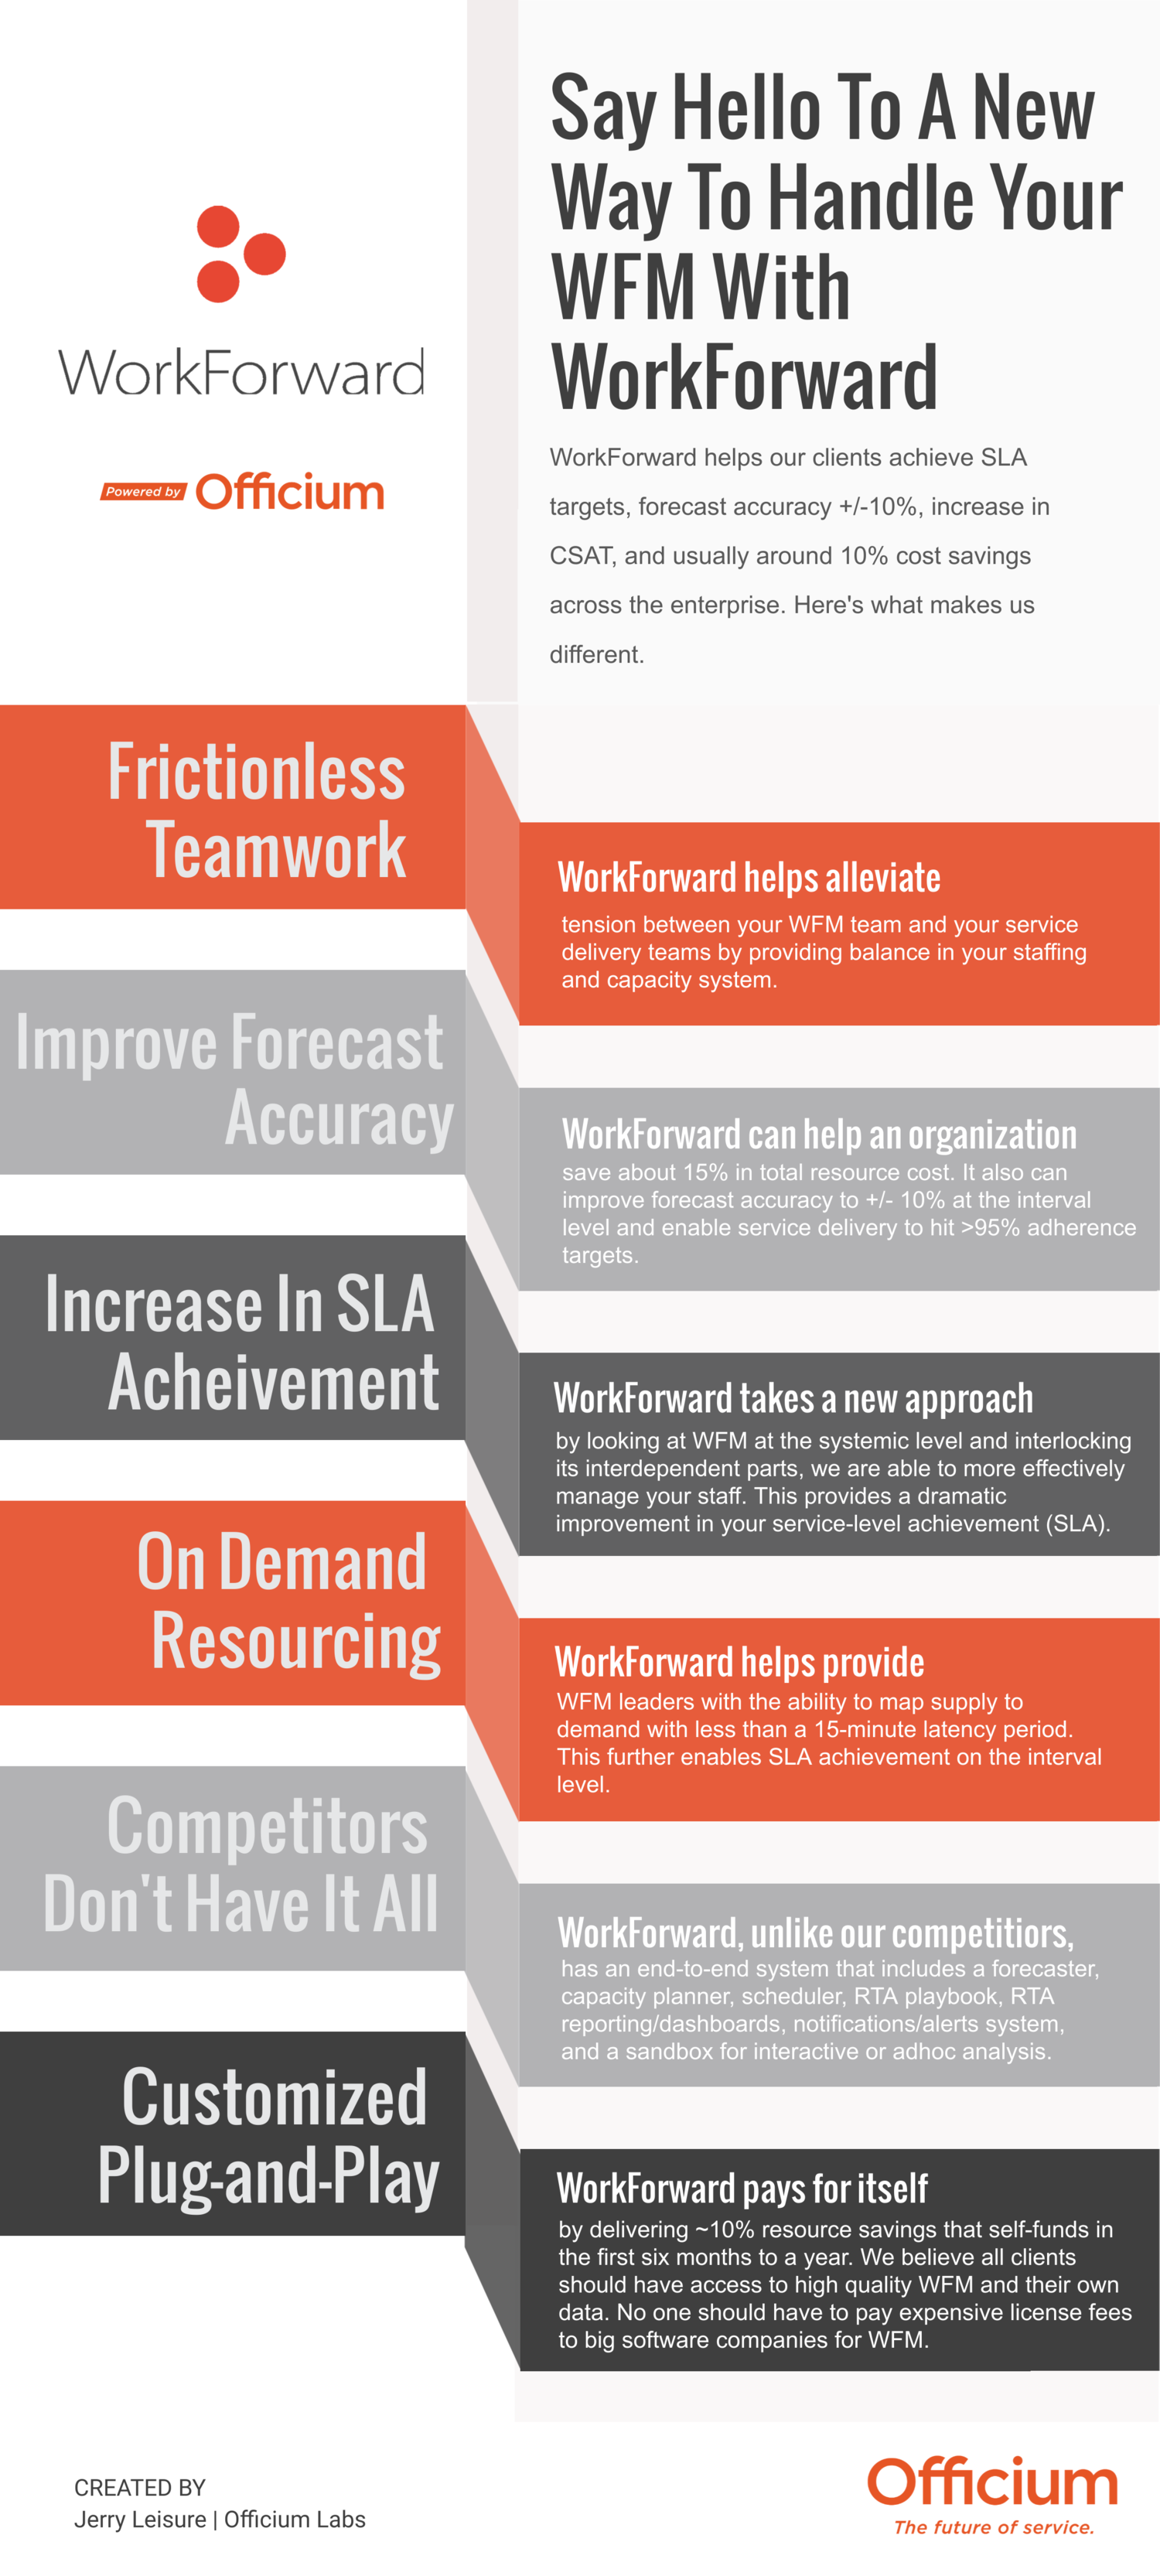 WorkForward+Infographic-Officium+Labs.png